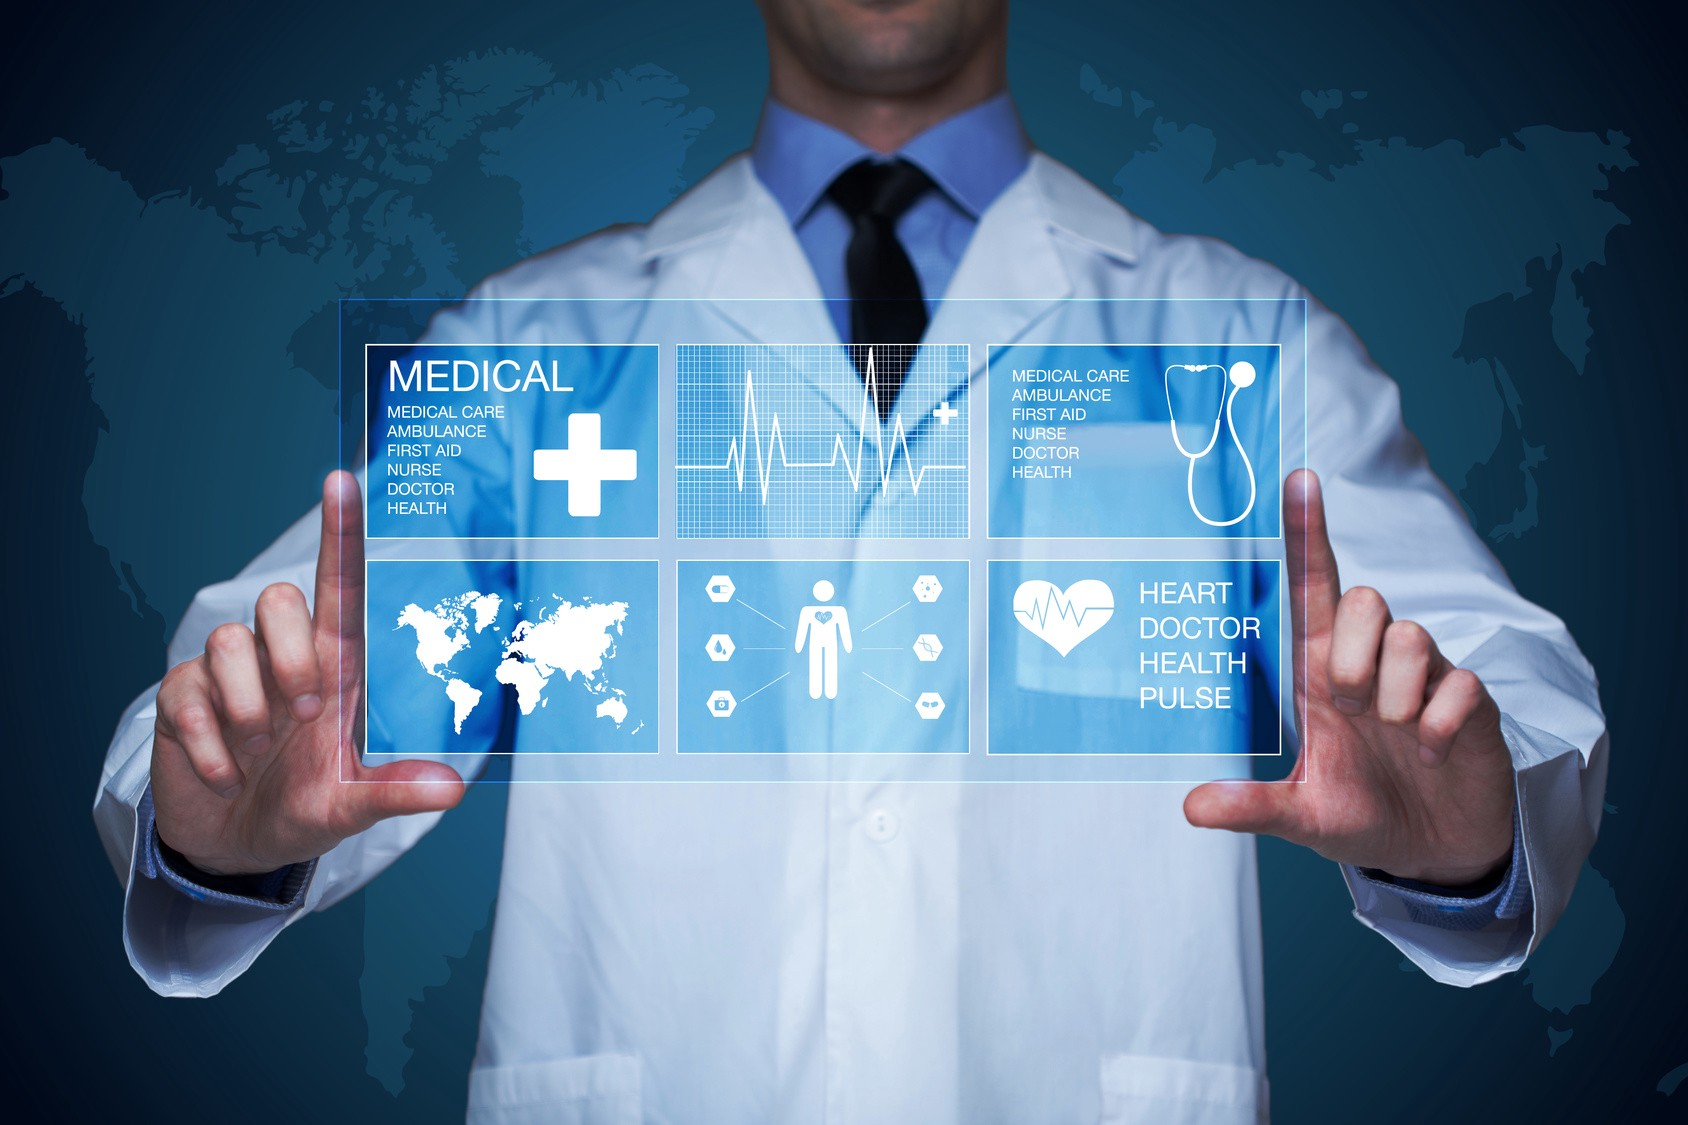 IoT Medical Devices and a doctor wearing a white lab coat